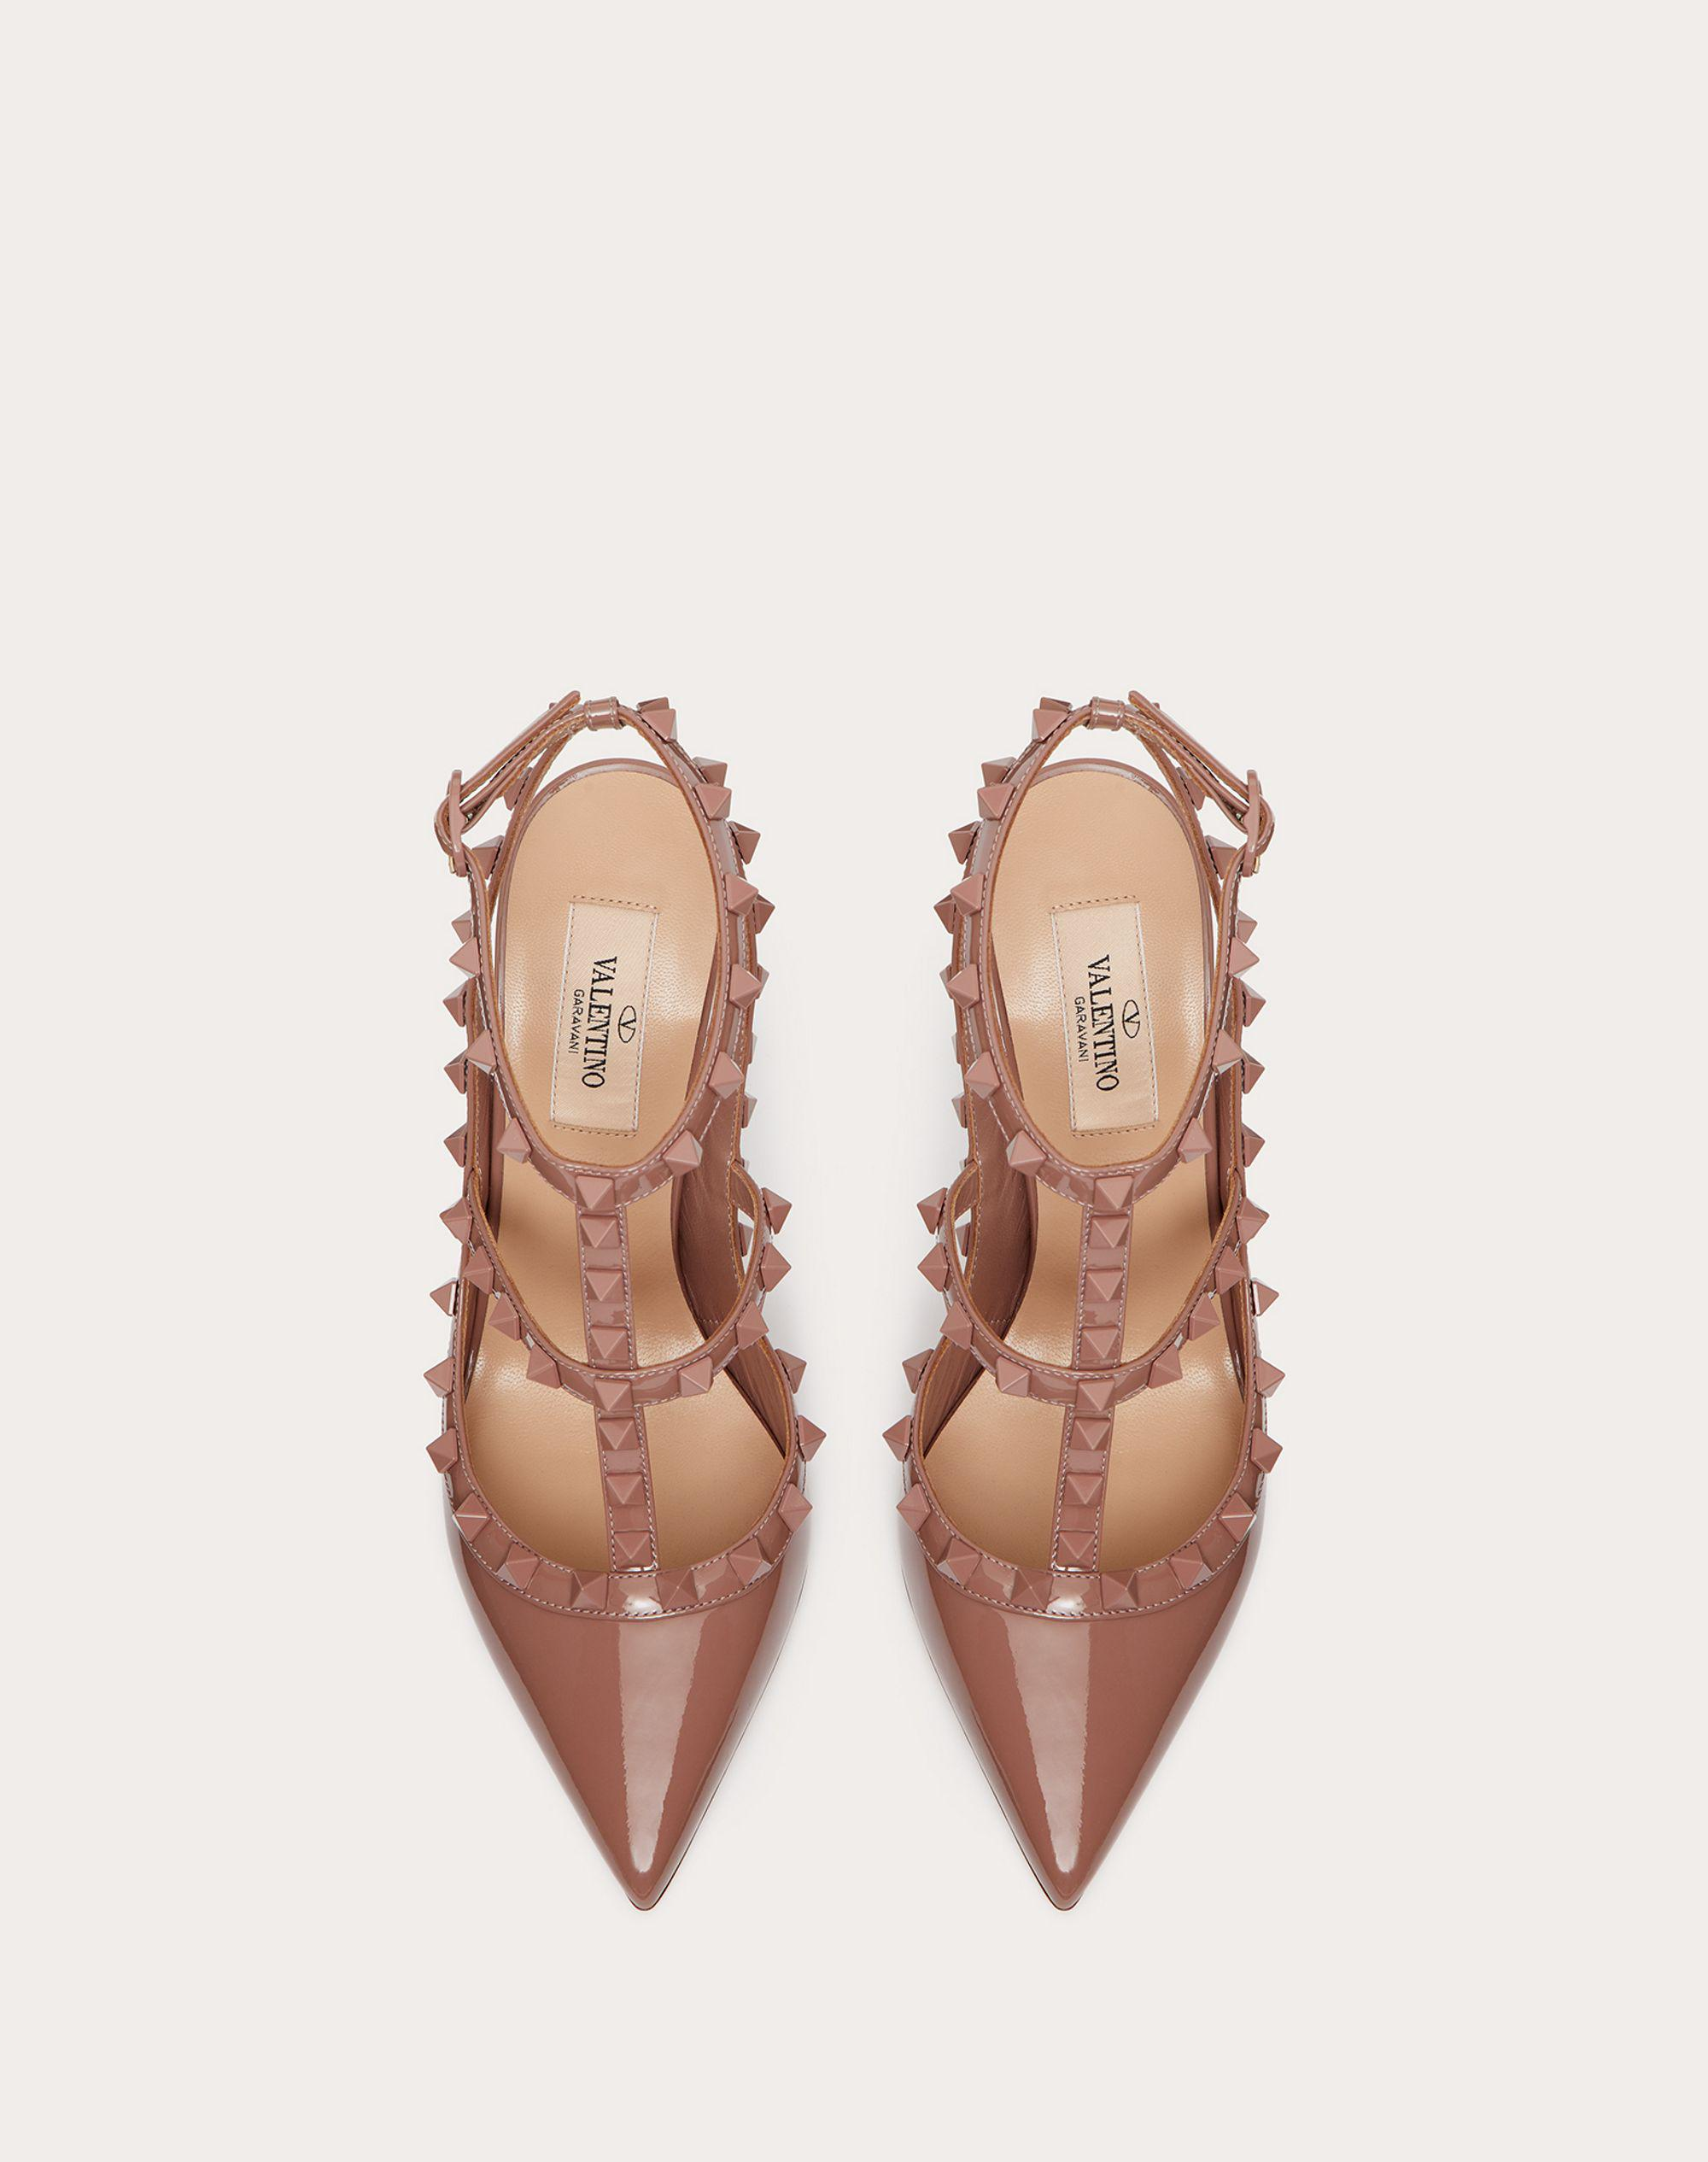 ROCKSTUD ANKLE STRAP PATENT-LEATHER PUMP WITH TONAL STUDS 100 MM 3